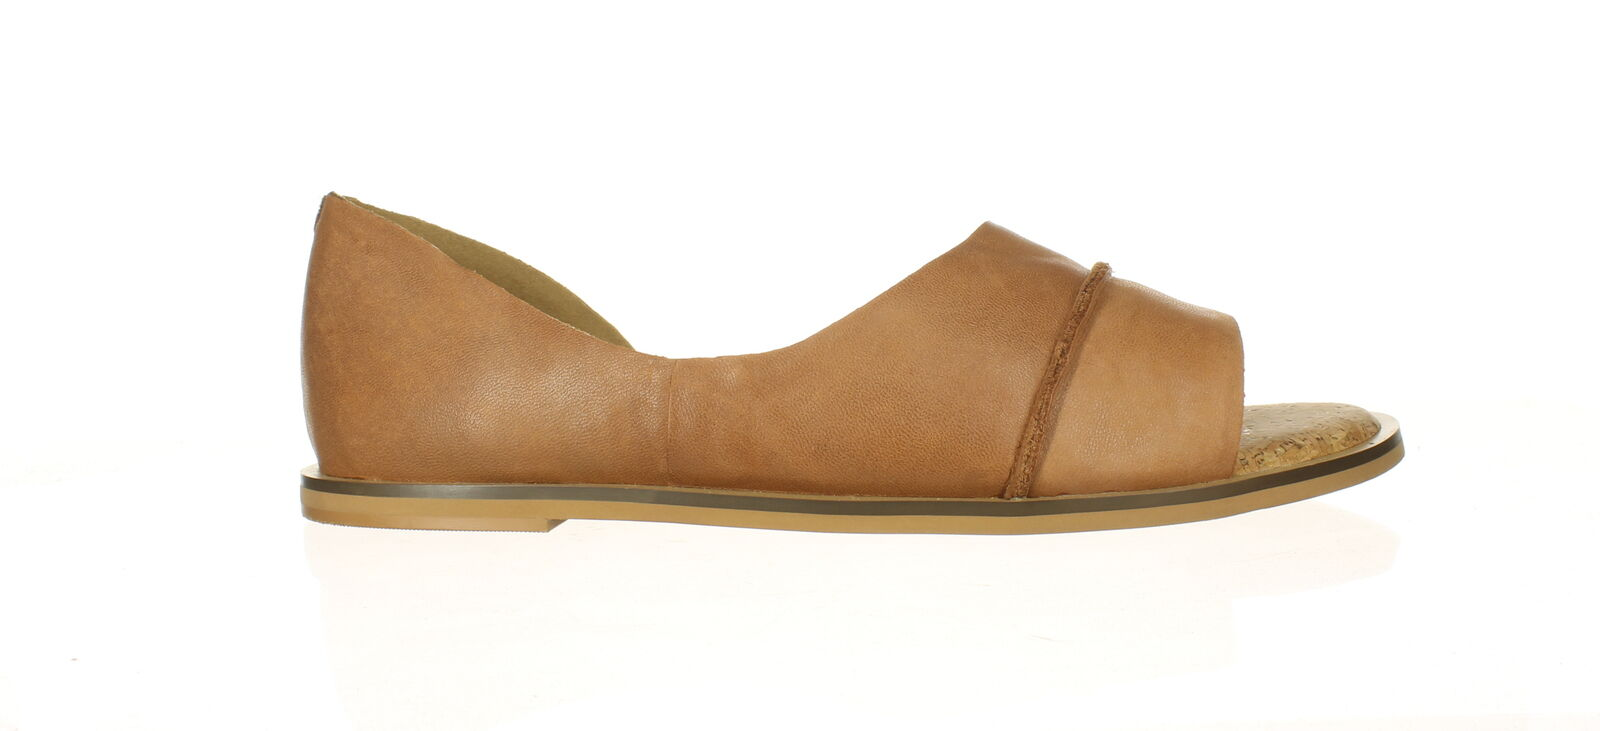 Lucky Brand Womens Fentin2 Brown D'Orsays Size 7 (2102940)